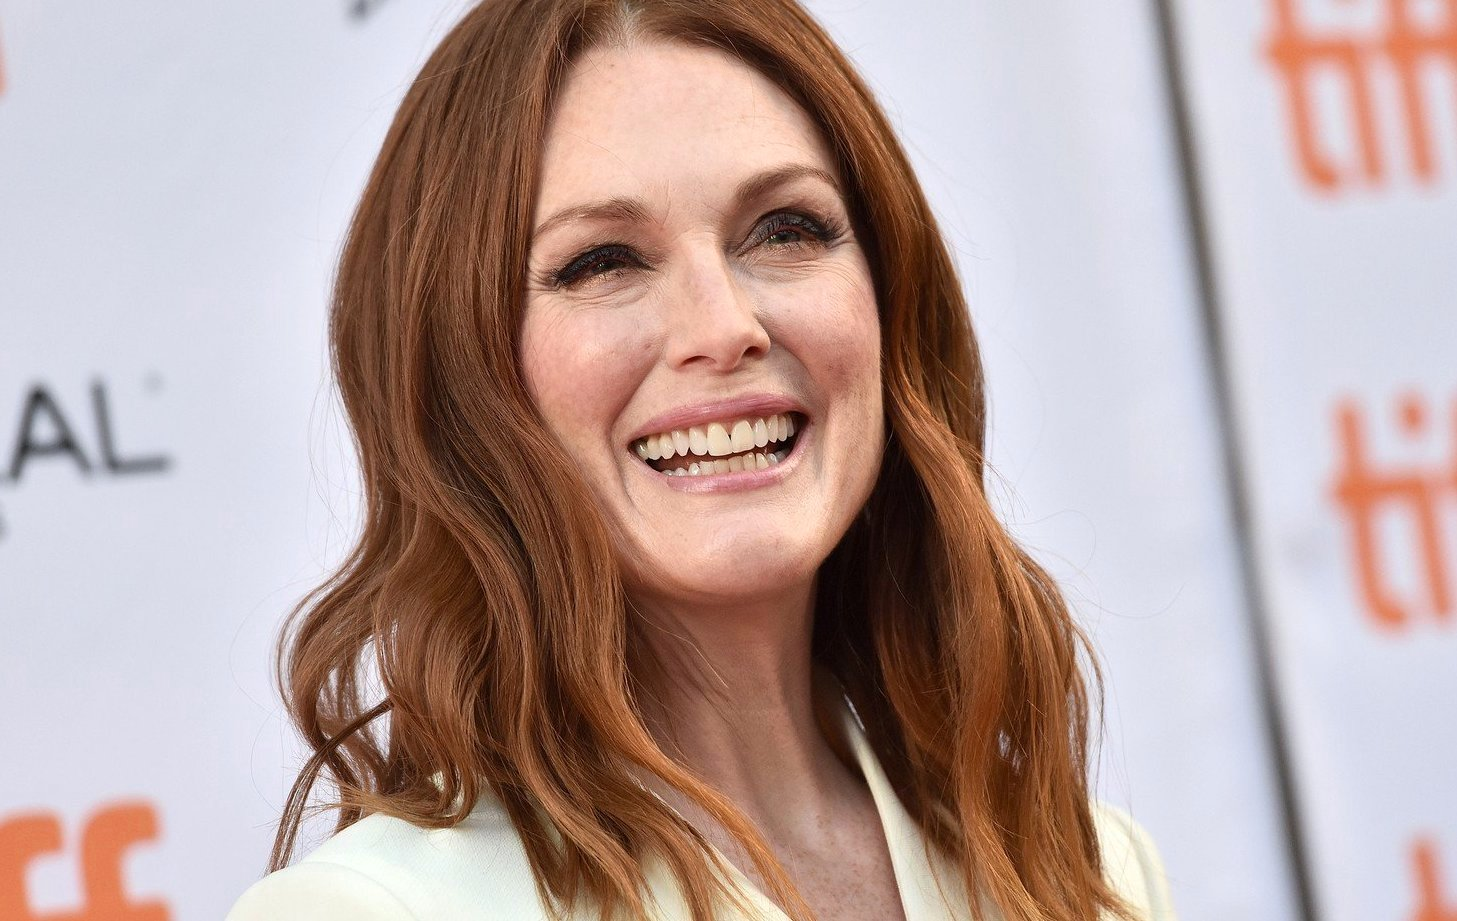 Actress Julianne Moore attends the 'Suburbicon' premiere on day three of the 2017 Toronto International Film Festival at Princess of Wales Theatre in Toronto, Ontario, Canada, on September 9, 2017., Image: 348864700, License: Rights-managed, Restrictions: , Model Release: no, Credit line: Profimedia, SIPA USA